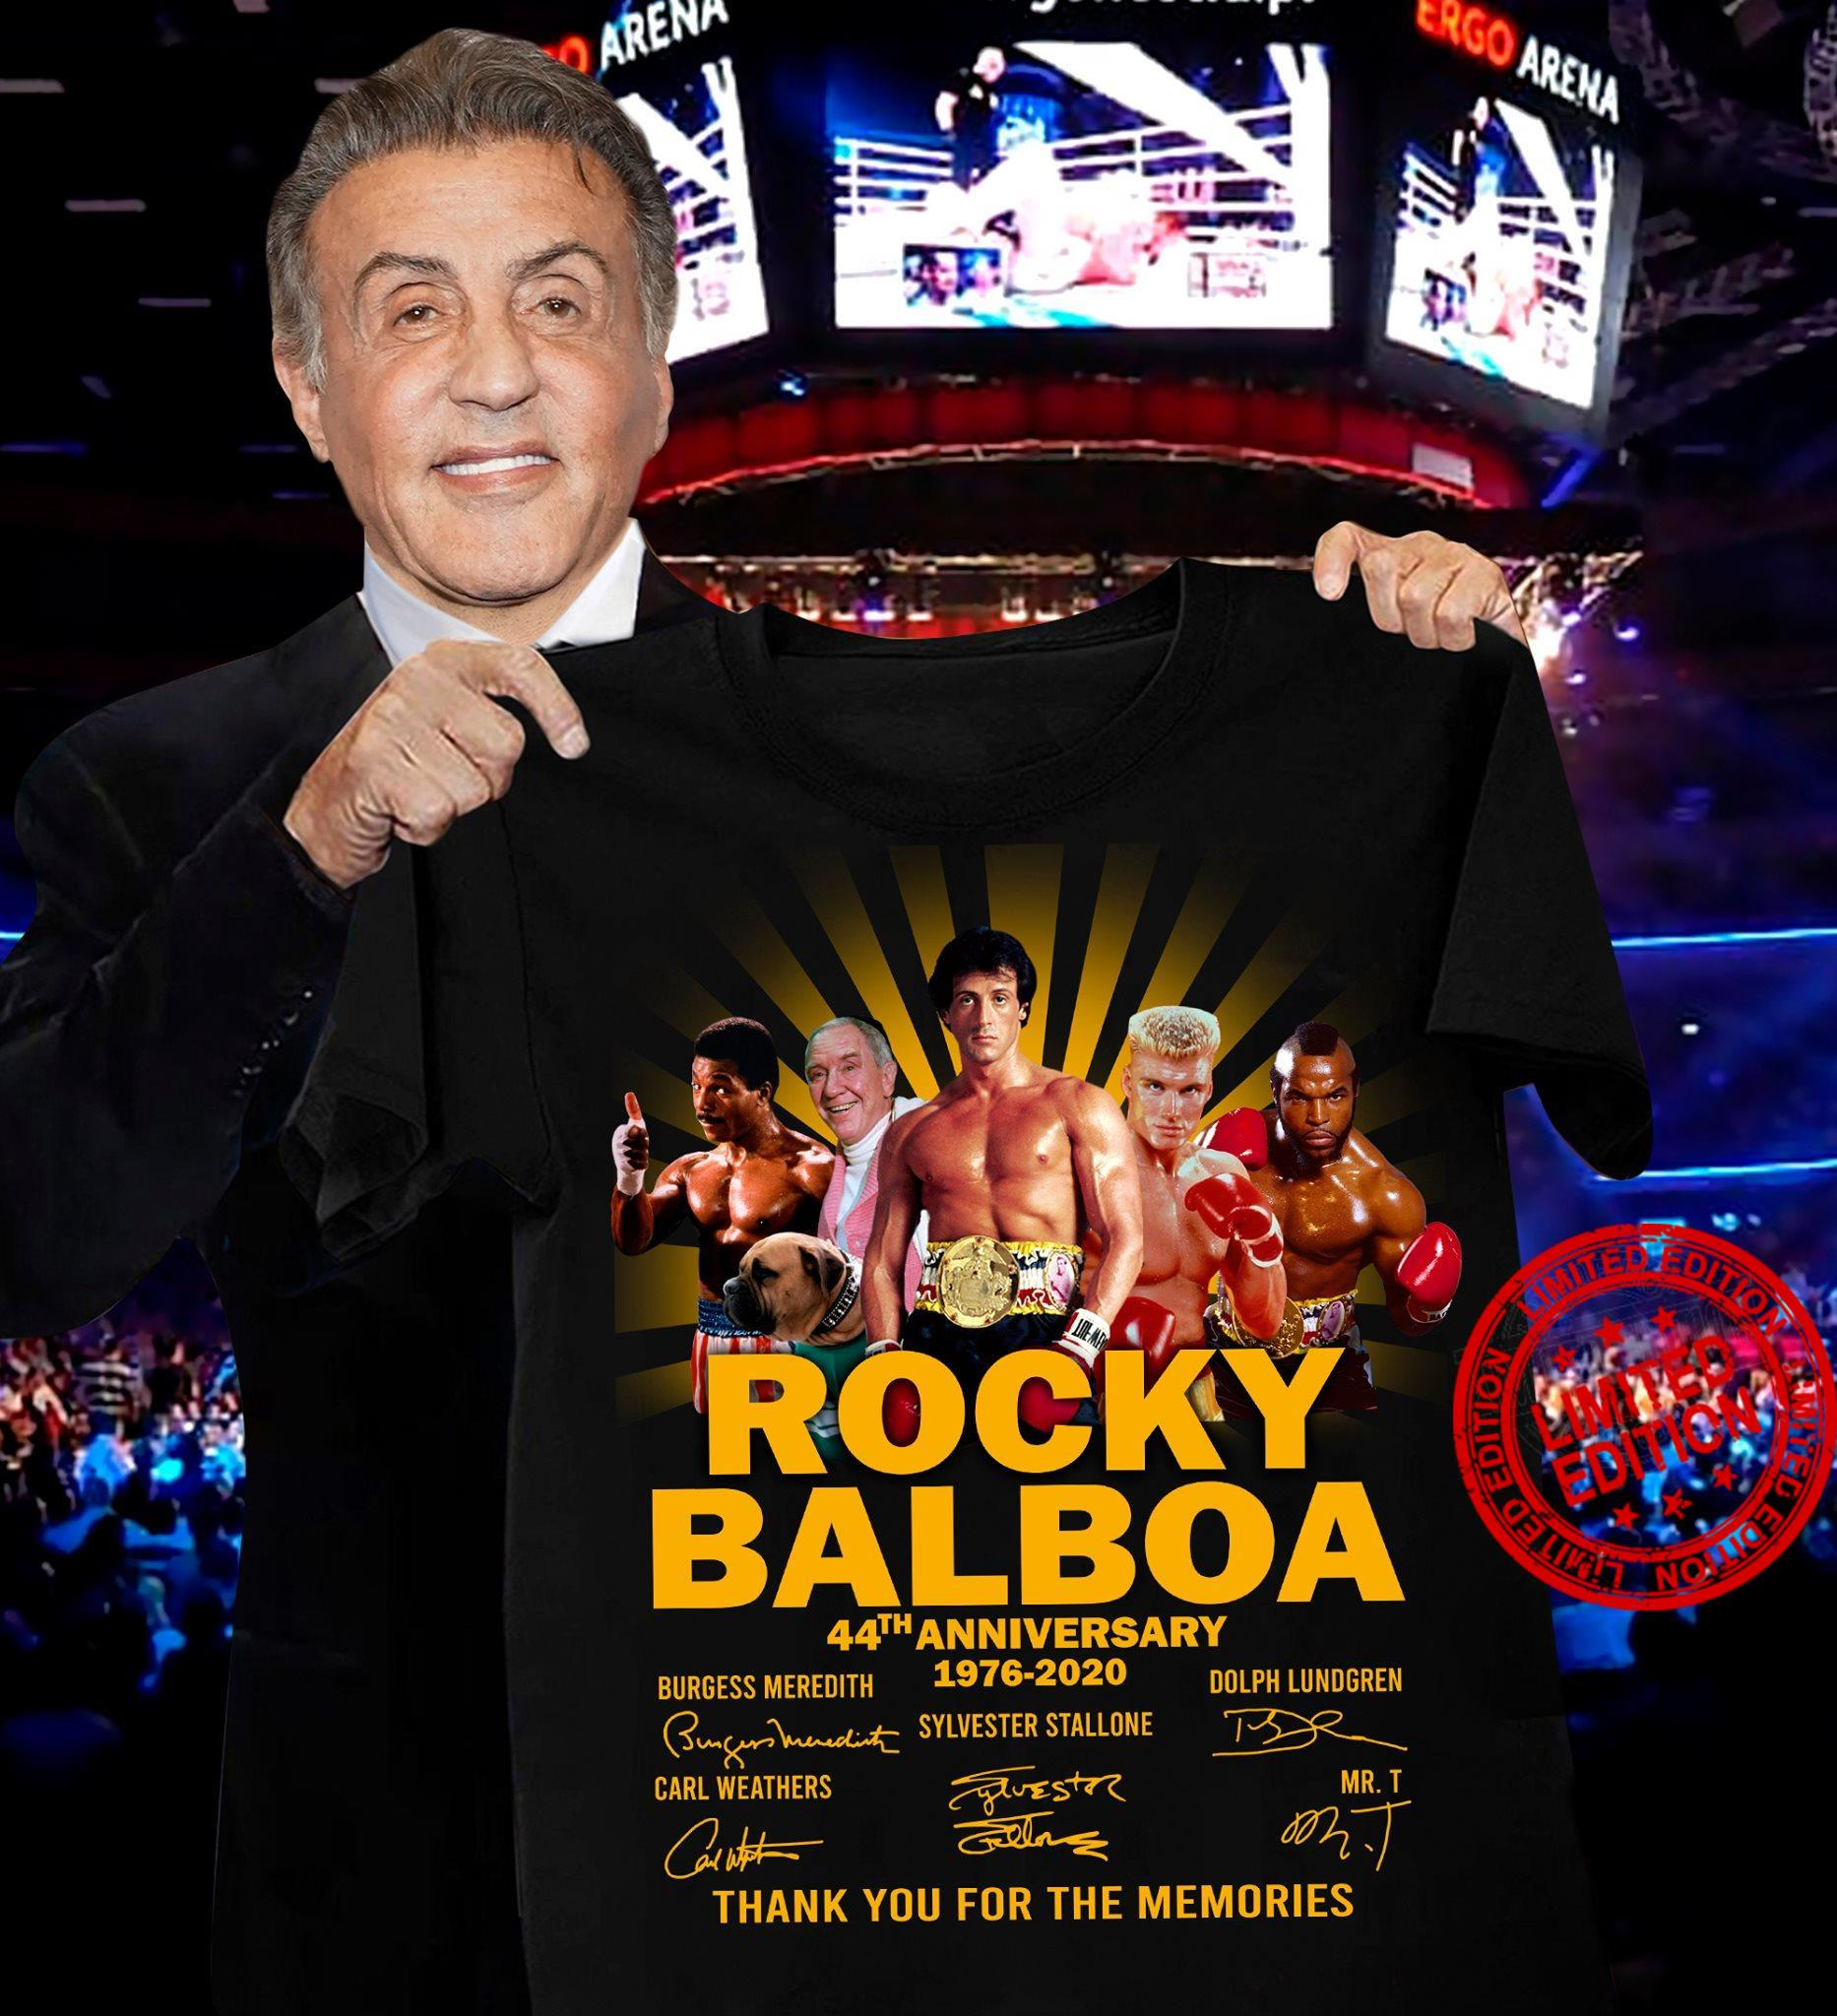 Rocky Balboa 44th Anniversary 1976-2020 Thank You For The Memories Shirt